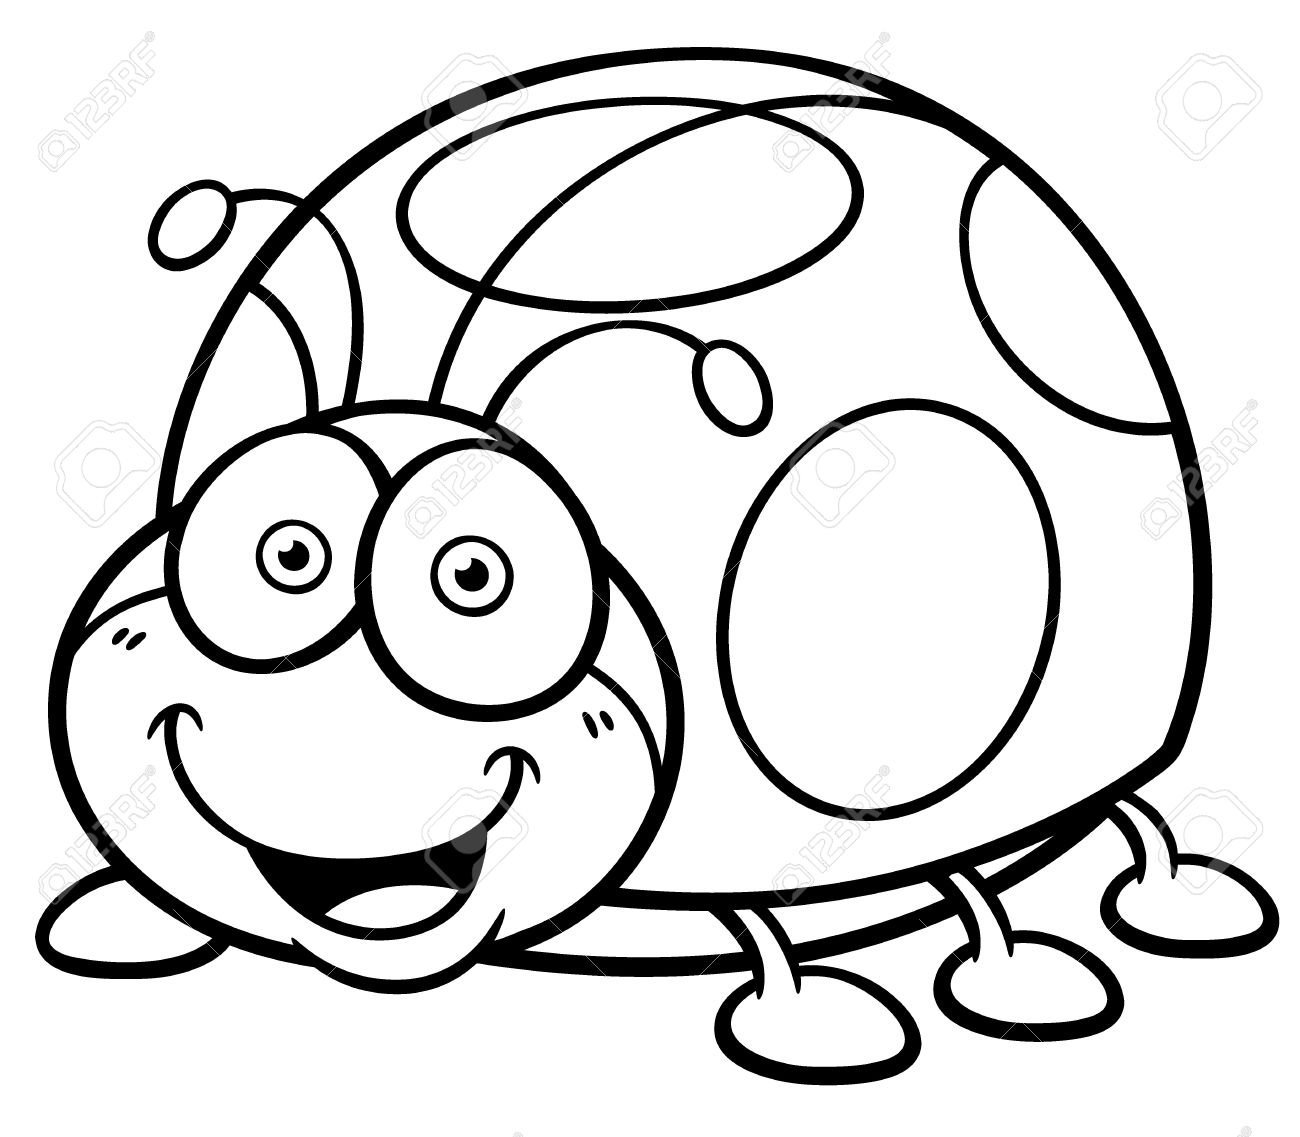 bug coloring pages ladybug - photo#21